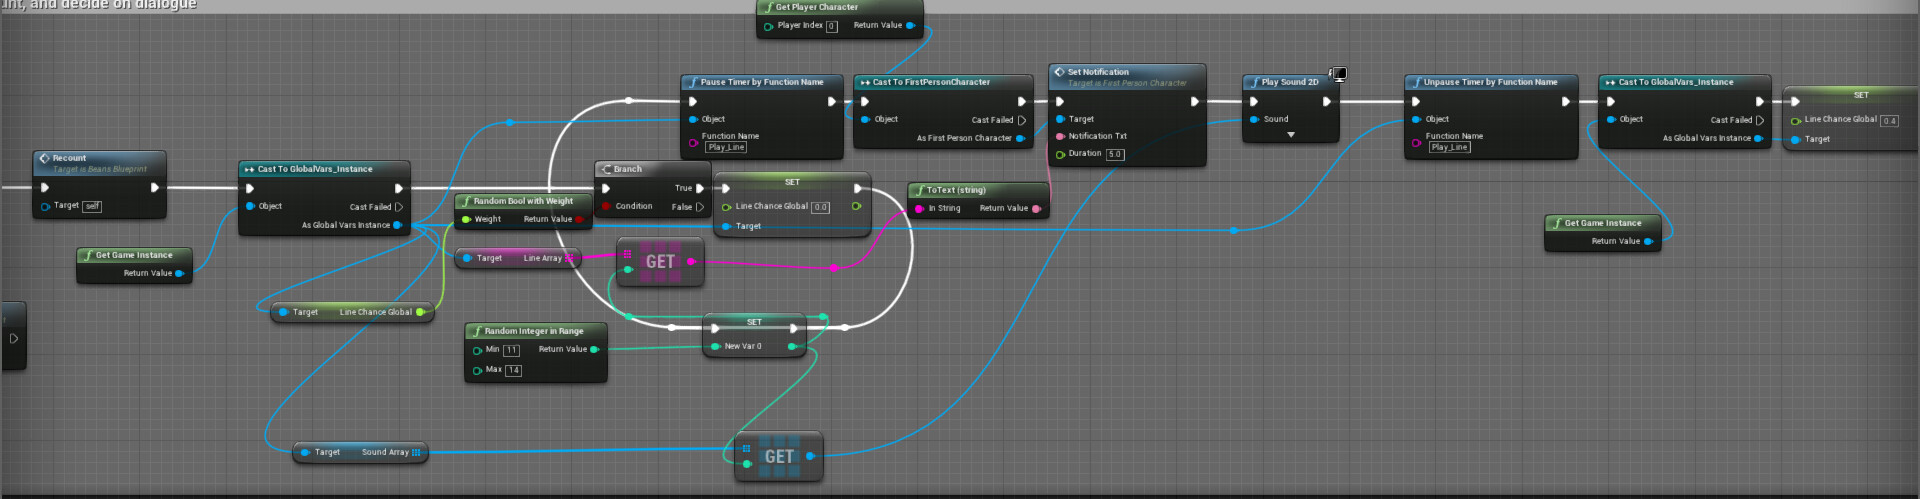 Dixon Dubow - Lessons Learned: Scripting Randomized Dialogue in UE4